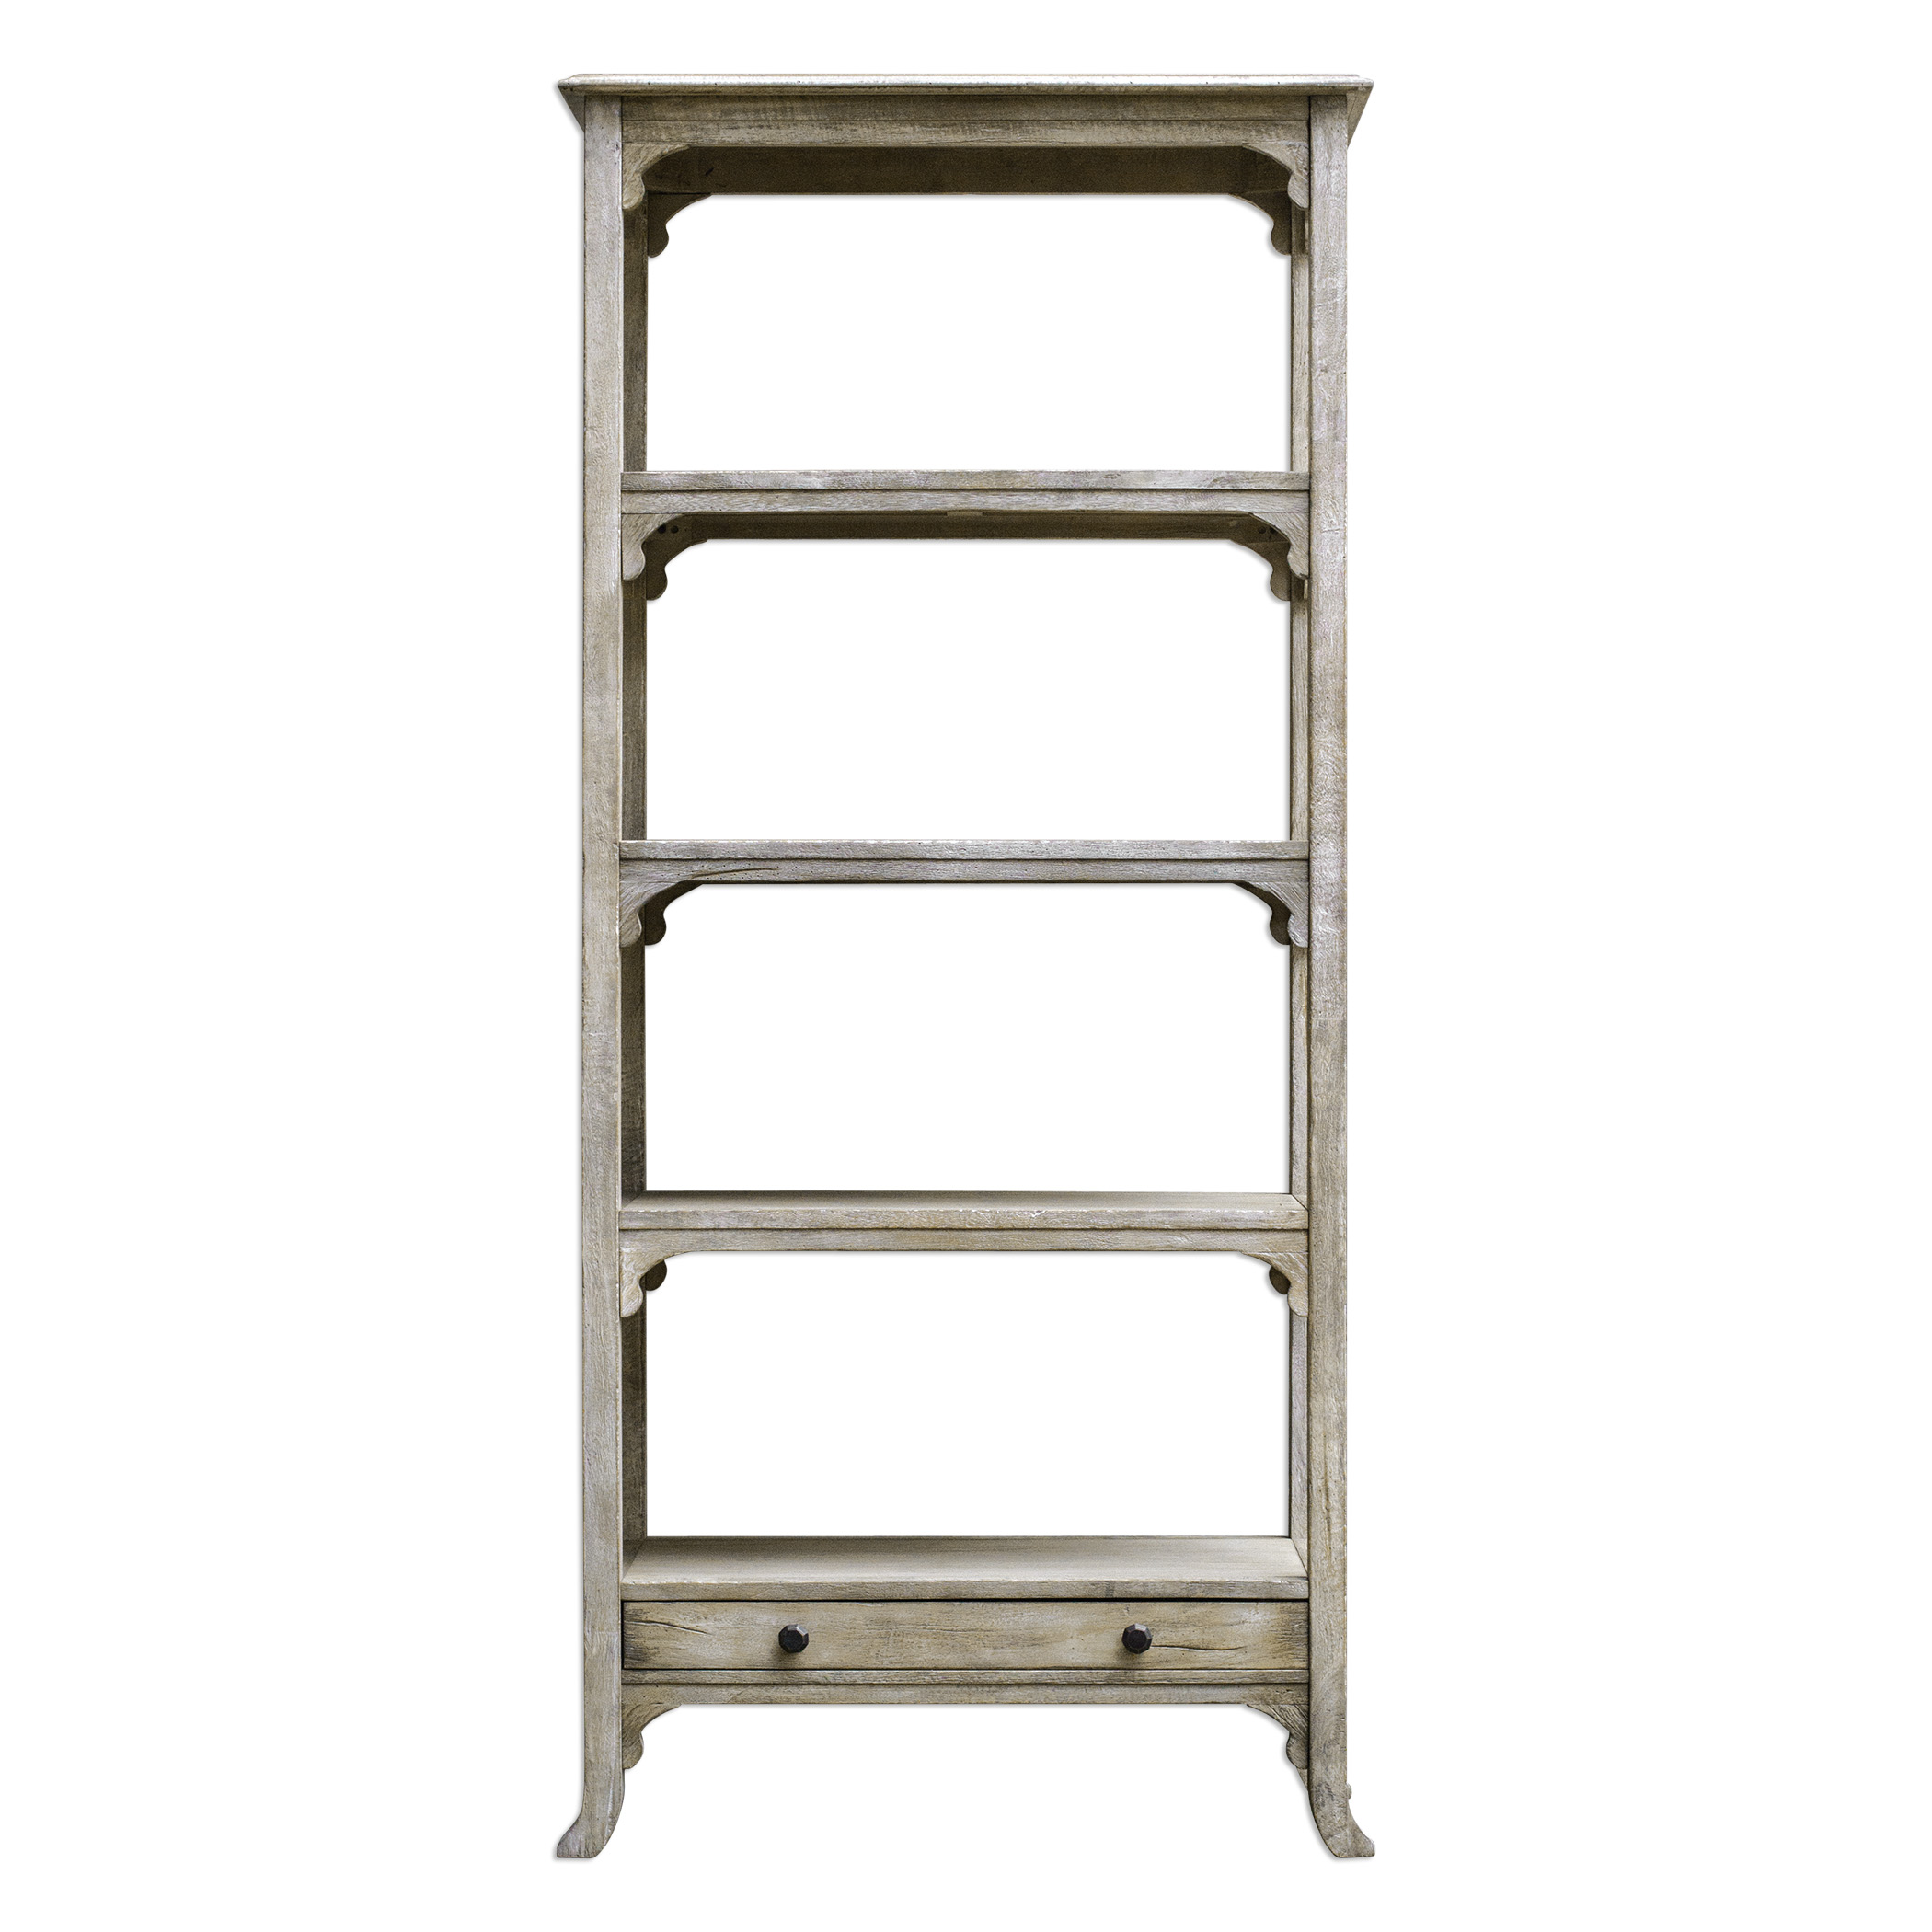 Accent Furniture - Bookcases Bridgely Aged White Etagere by Uttermost at Factory Direct Furniture